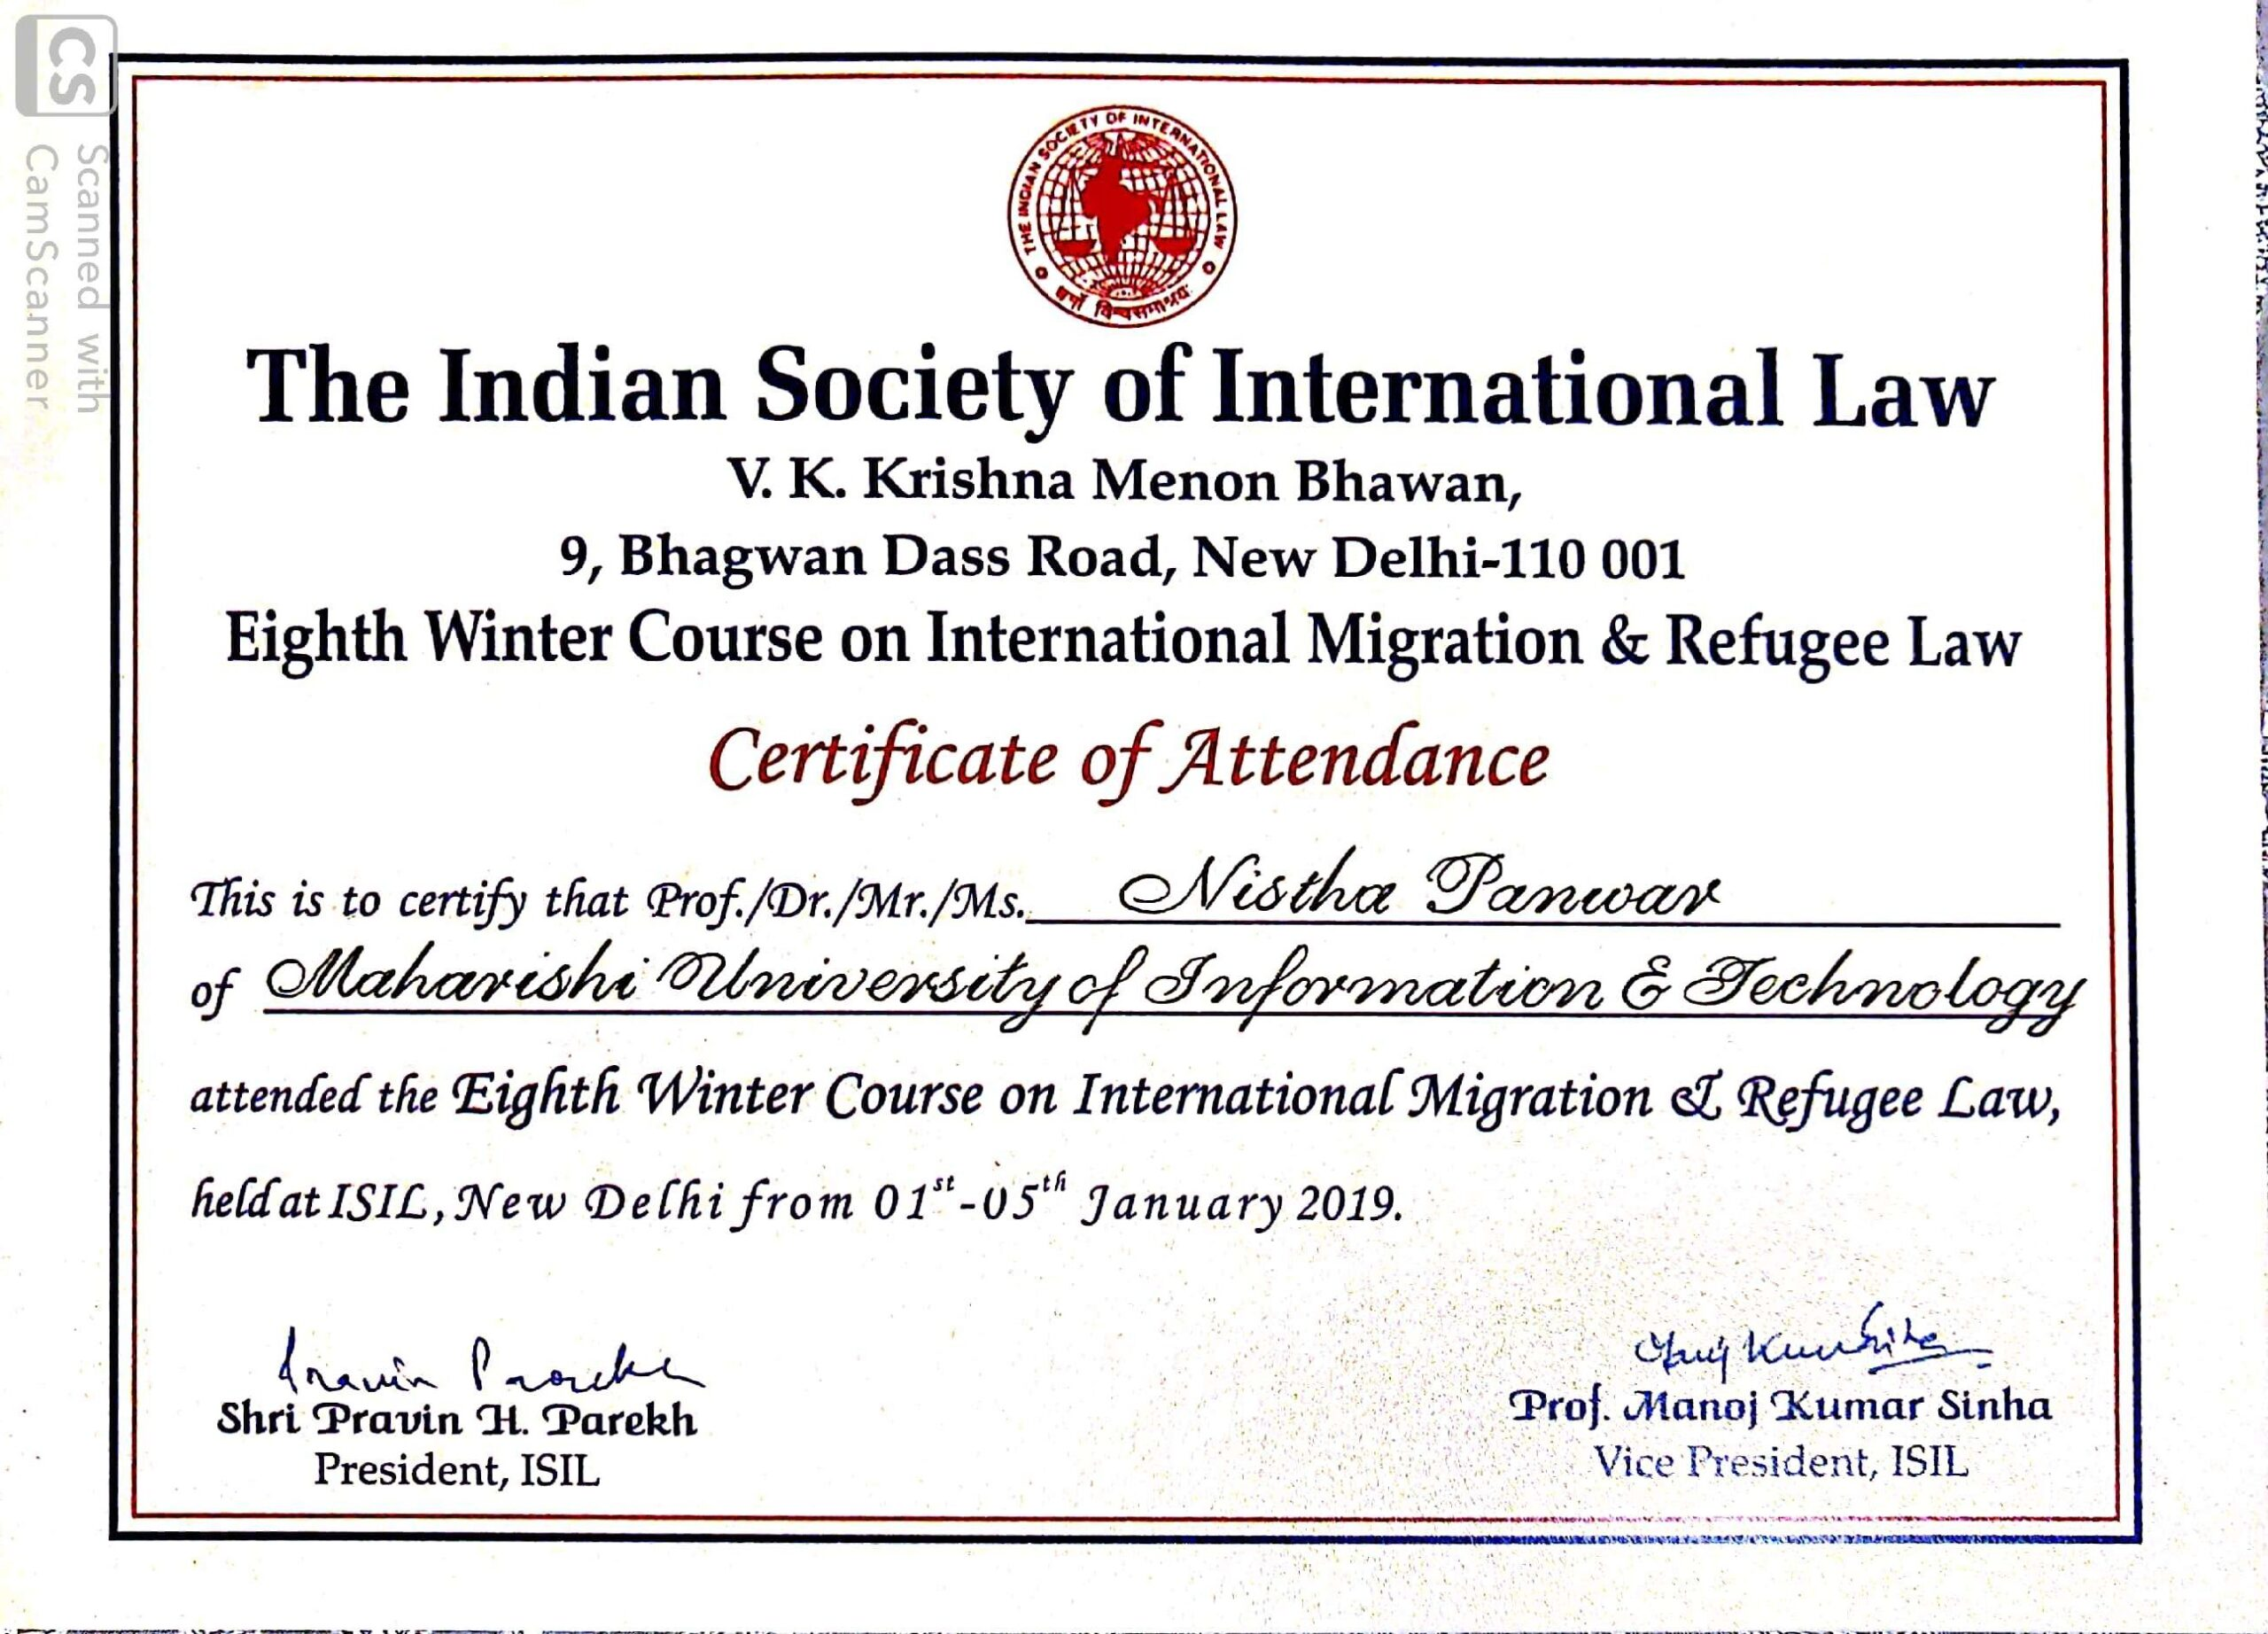 MUIT Noida: Law Student Certificate - Indian Society Of International Law Certificate